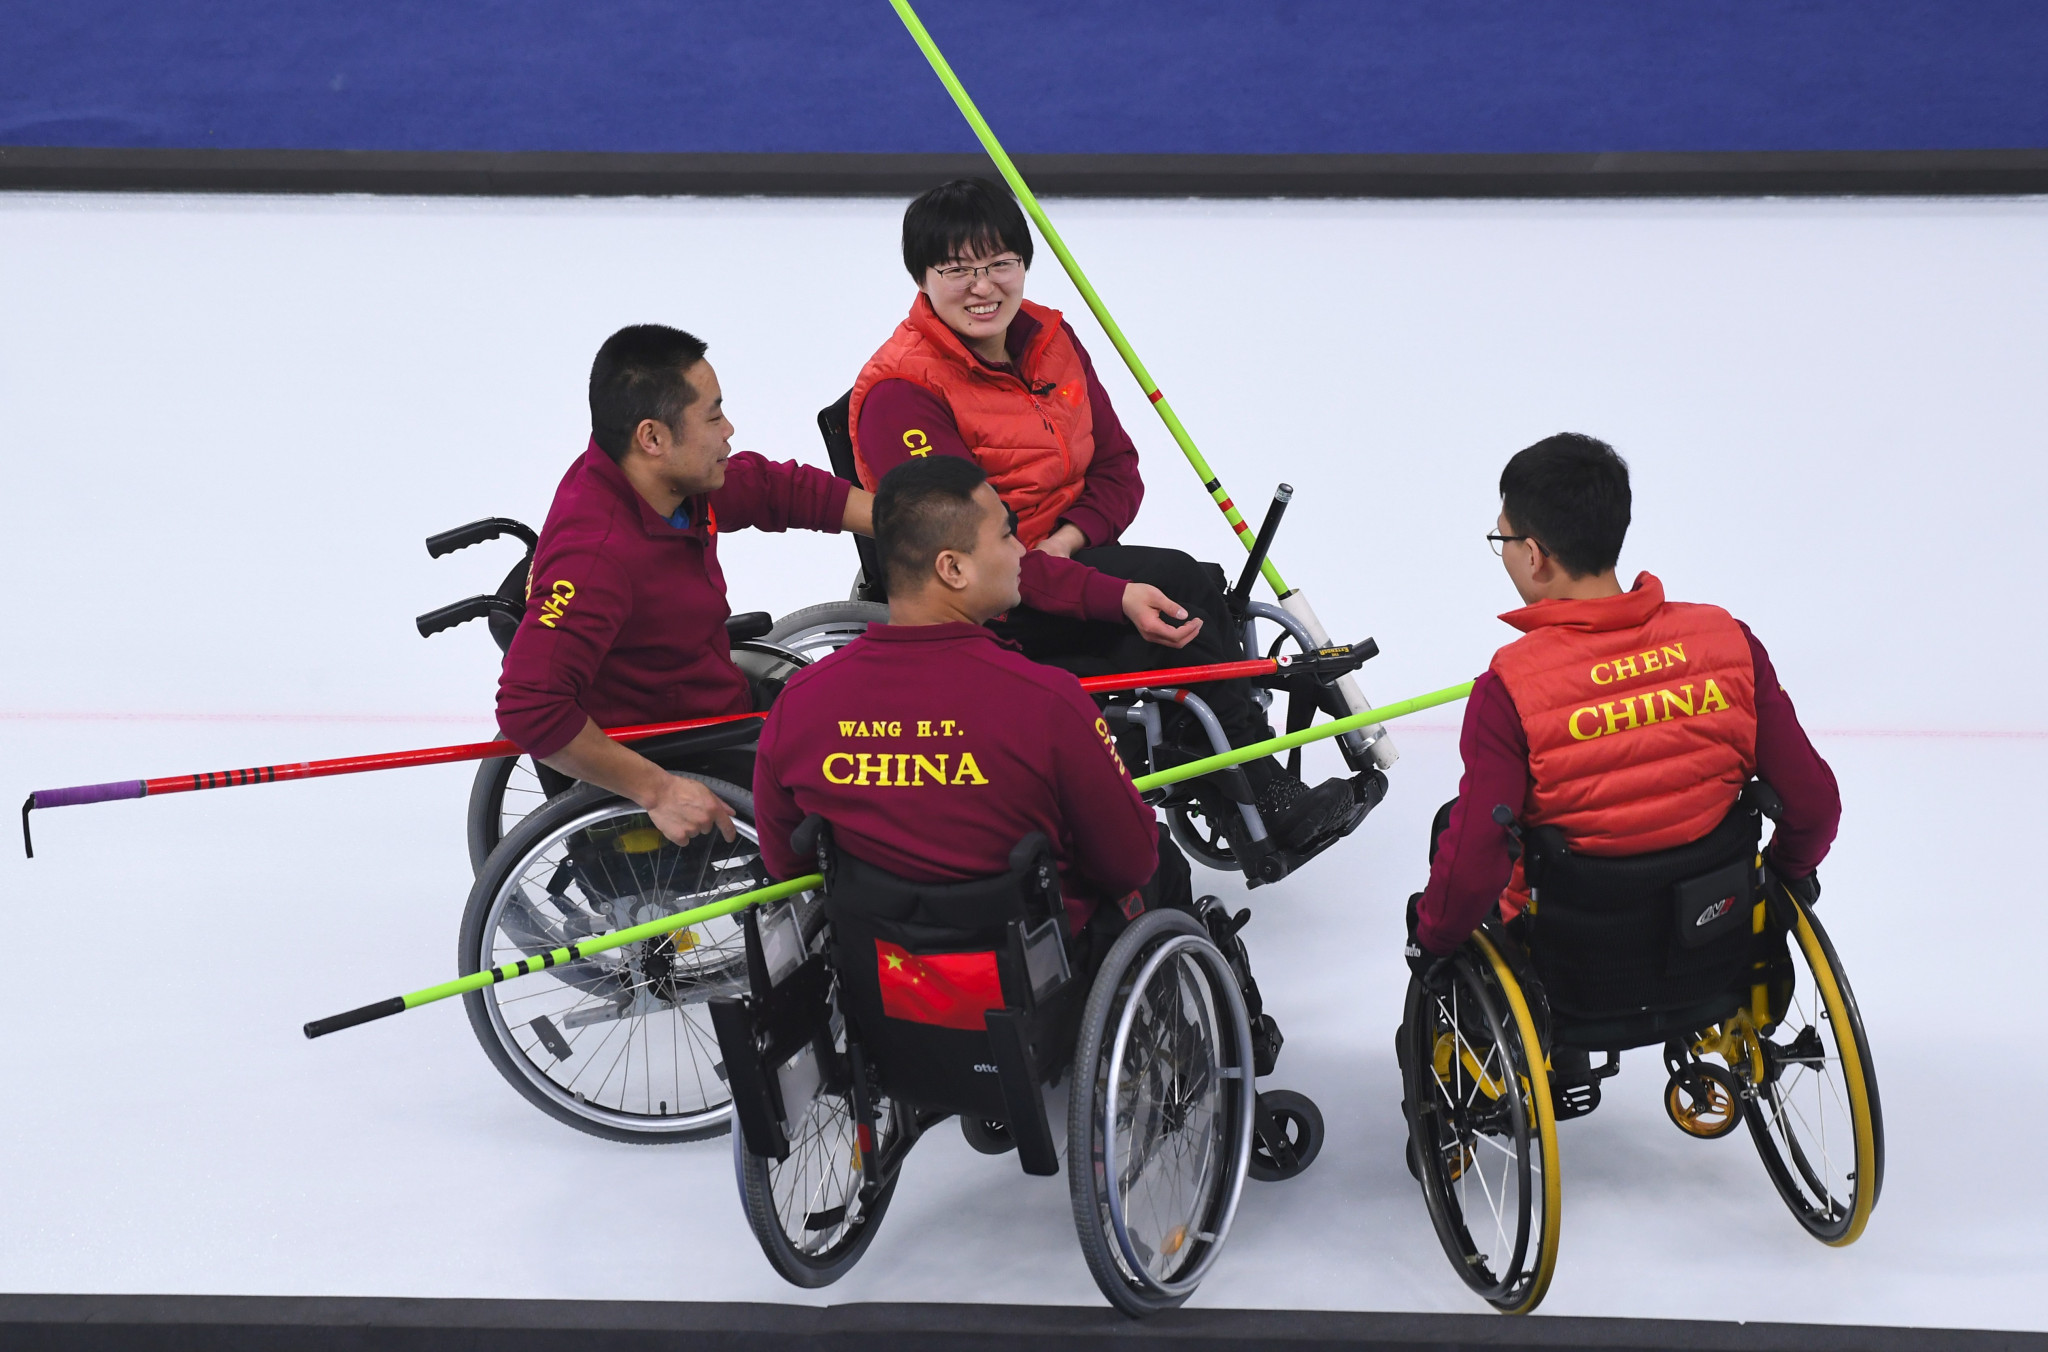 China beat Norway in the Paralympic final in Pyeongchang ©Getty Images